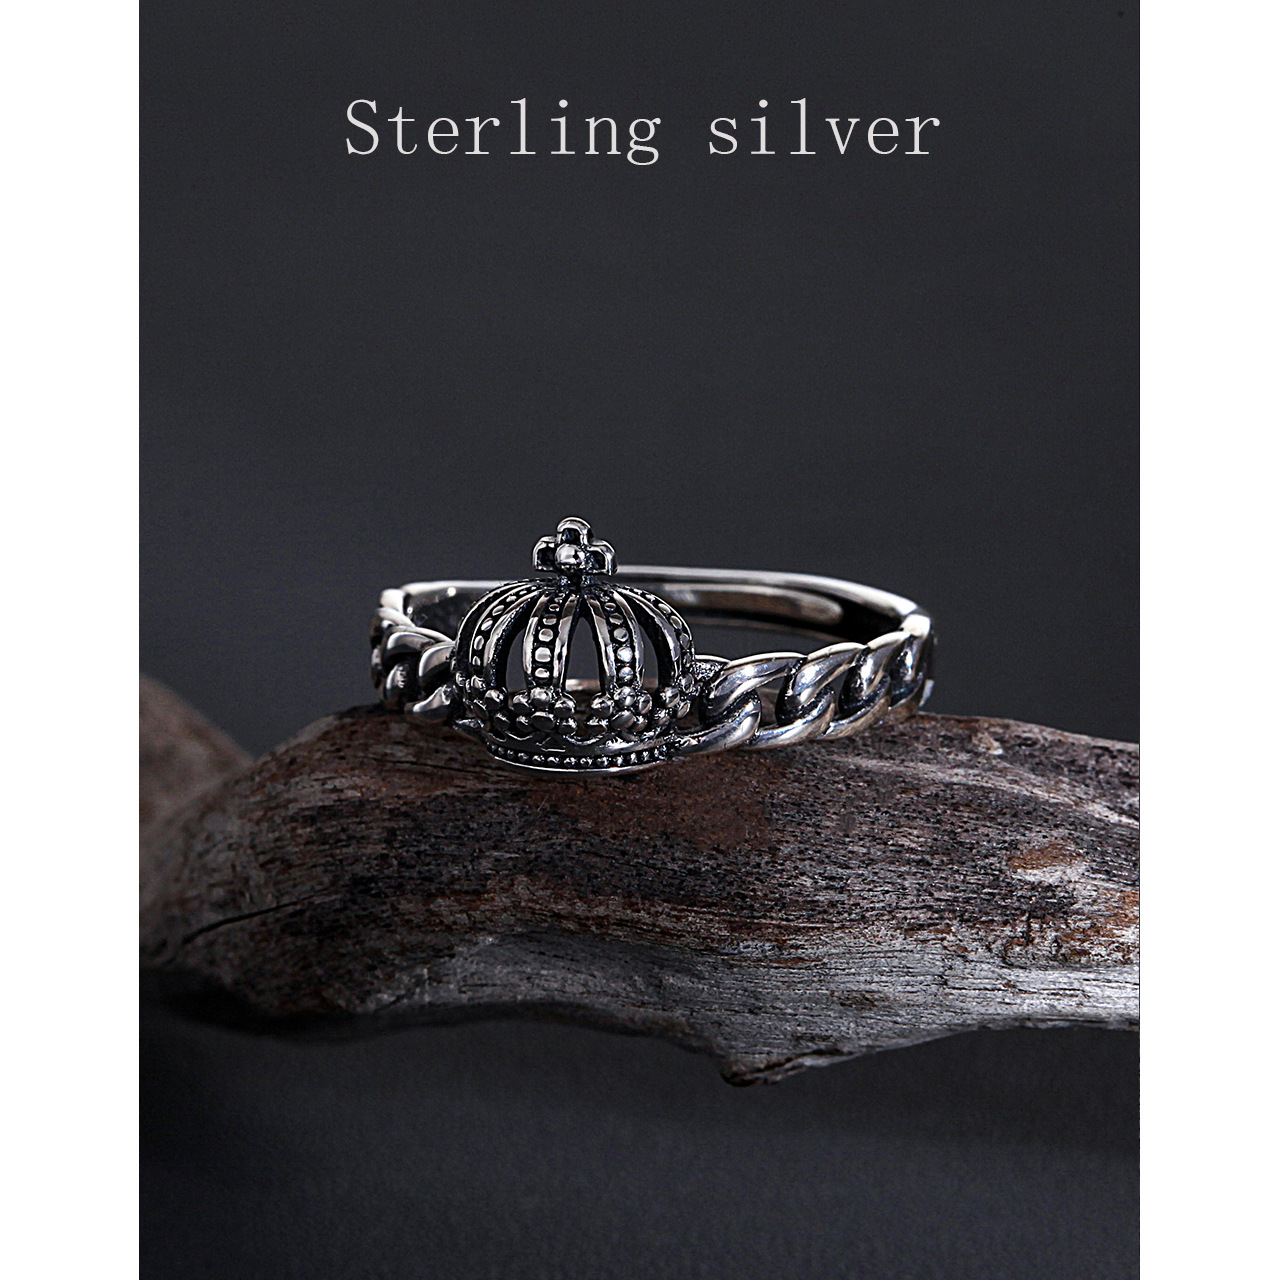 European Style S925 Sterling Silver Crown Twist Chain Opening Adjustable Nostalgic Personality Fashion Trend Female RingS